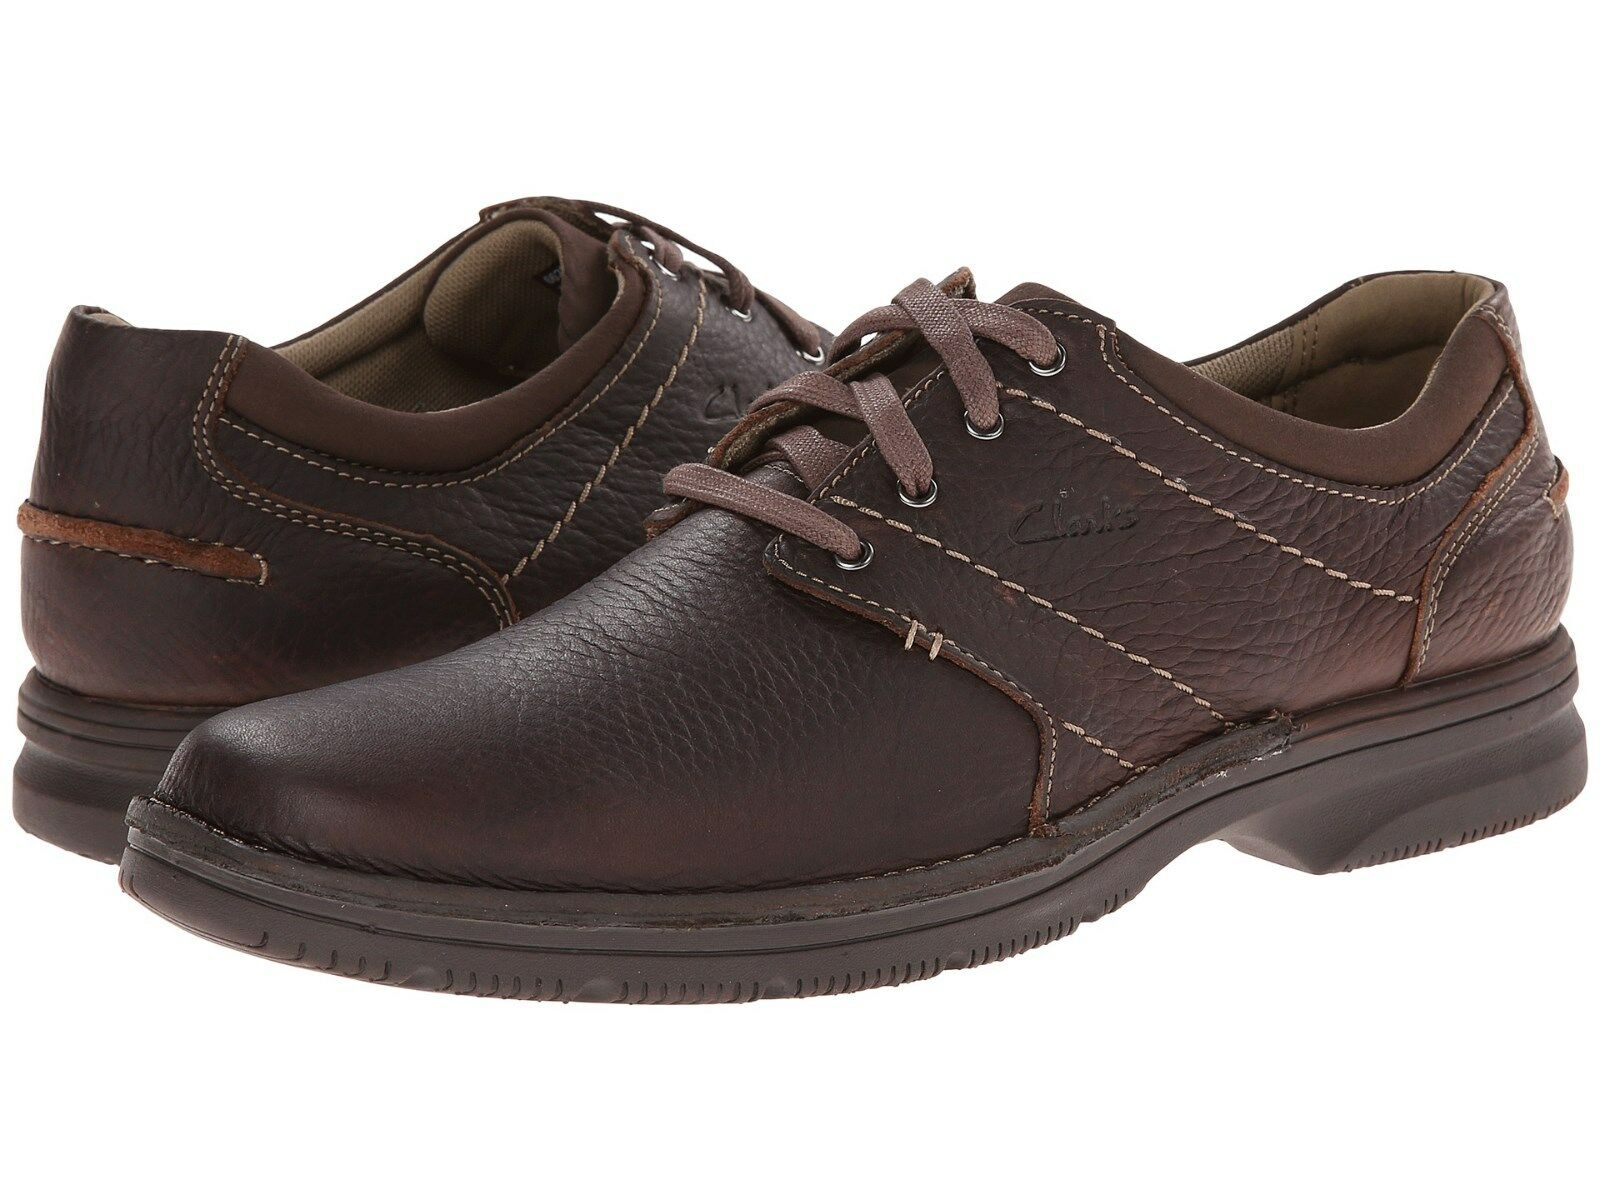 Scarpe casual da uomo  uomos Clarks Senner Place Lace Up Shoe Brown Tumbled Leather 26066255